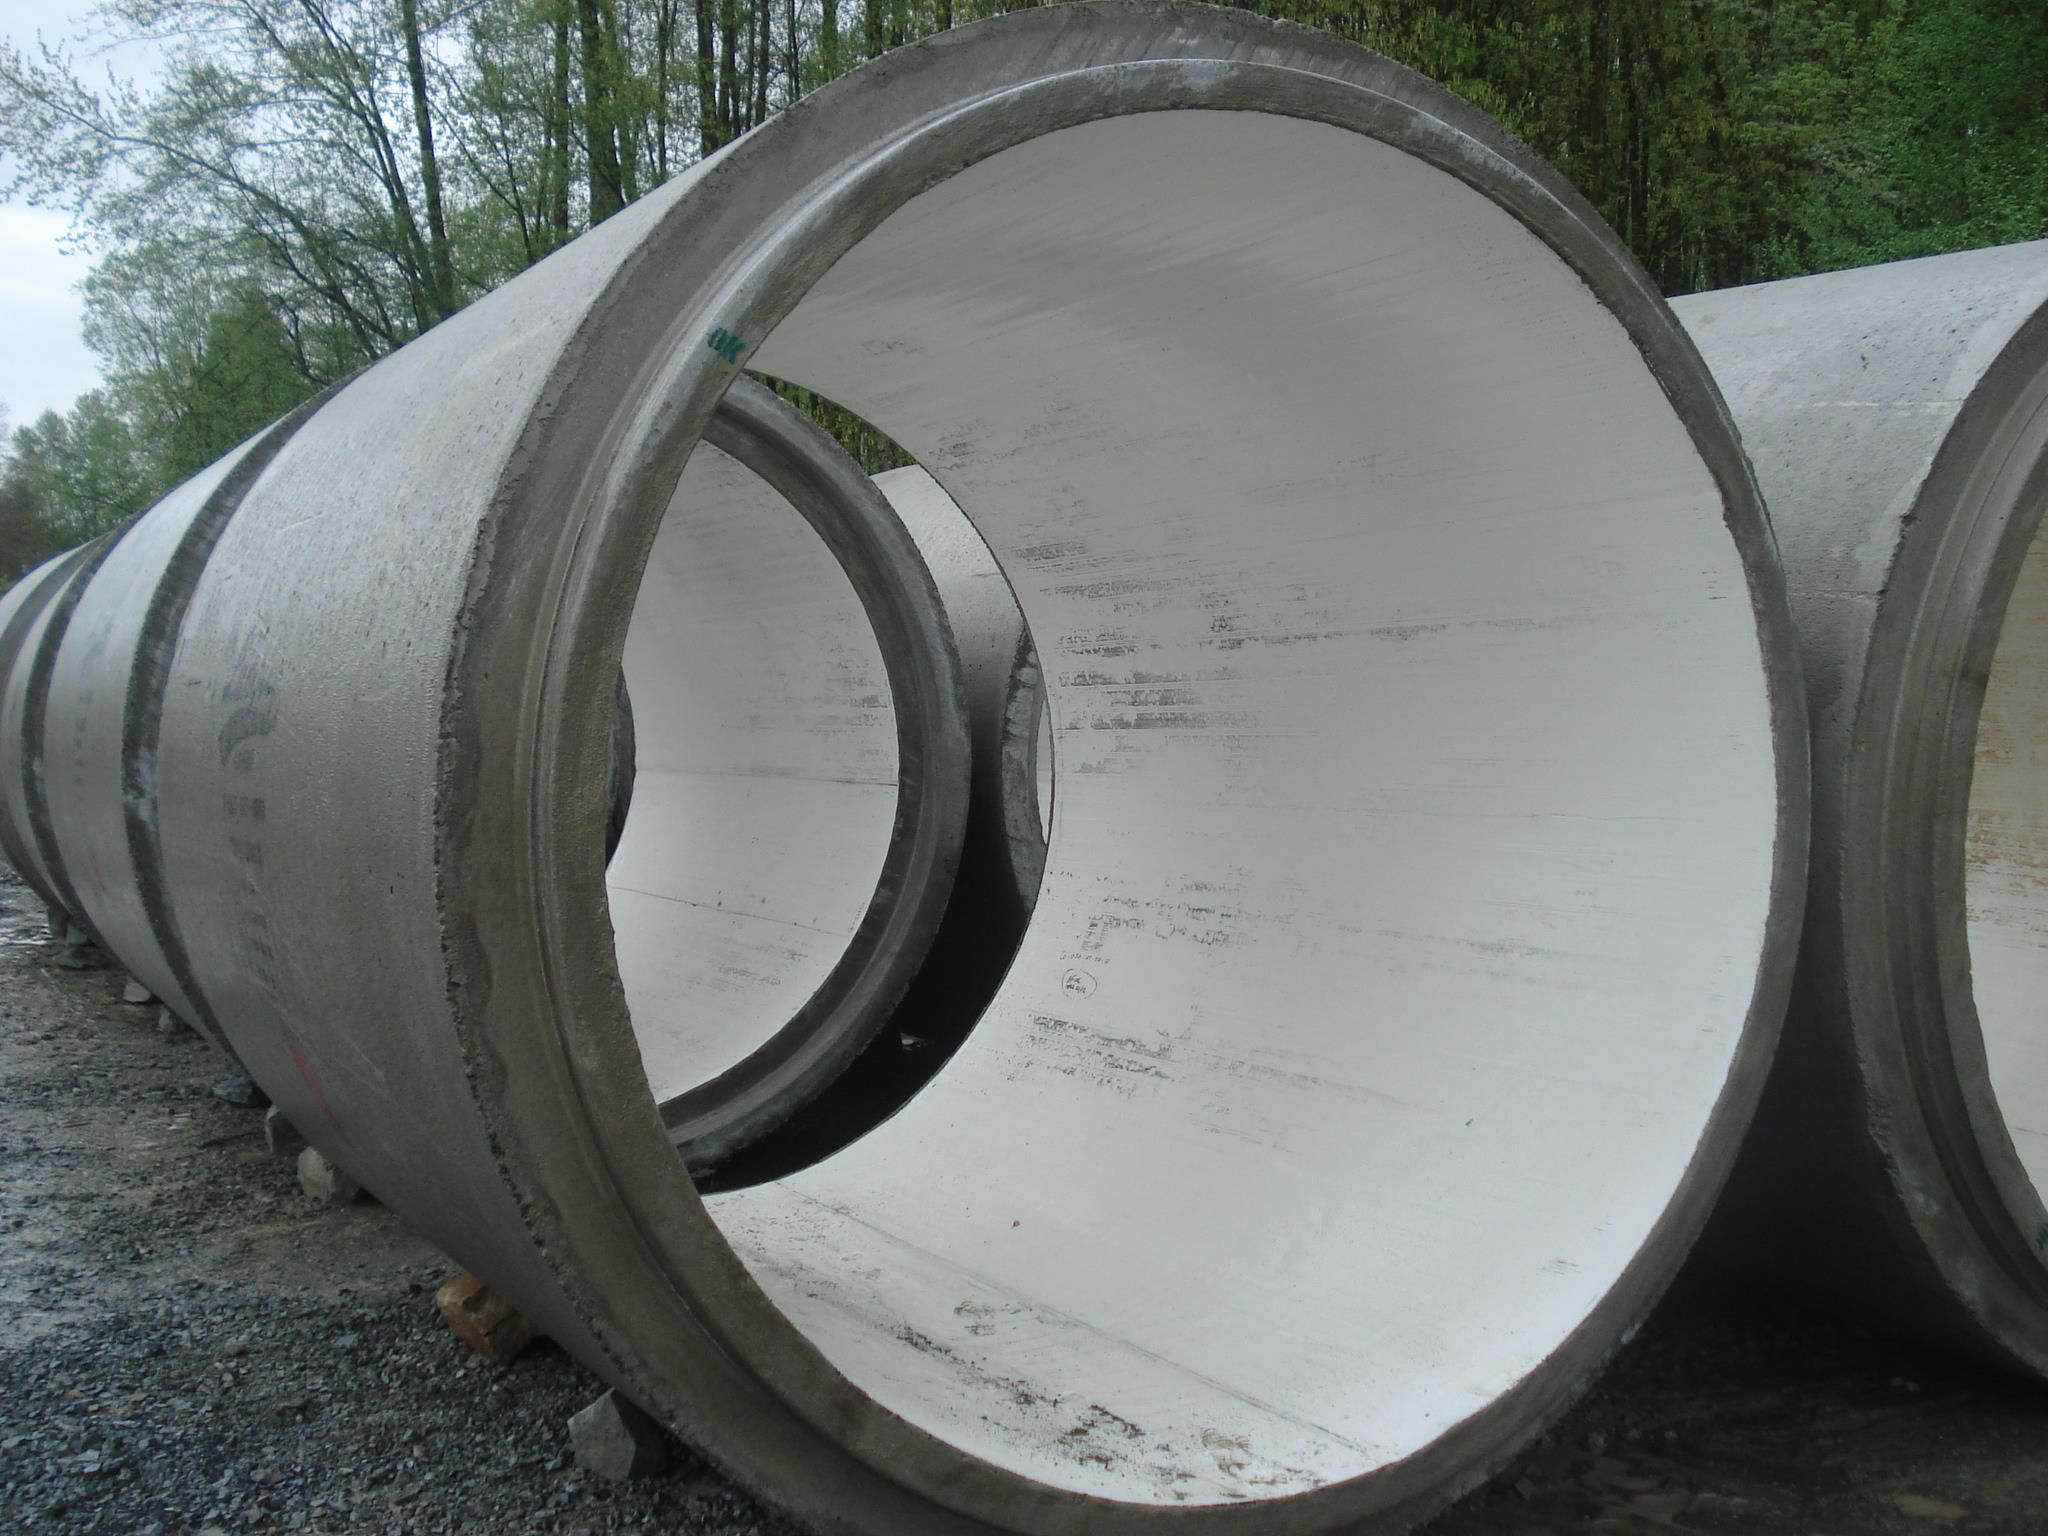 Precast Concrete Sewer Pipe : Lined concrete pipe for sanitary sewers precast